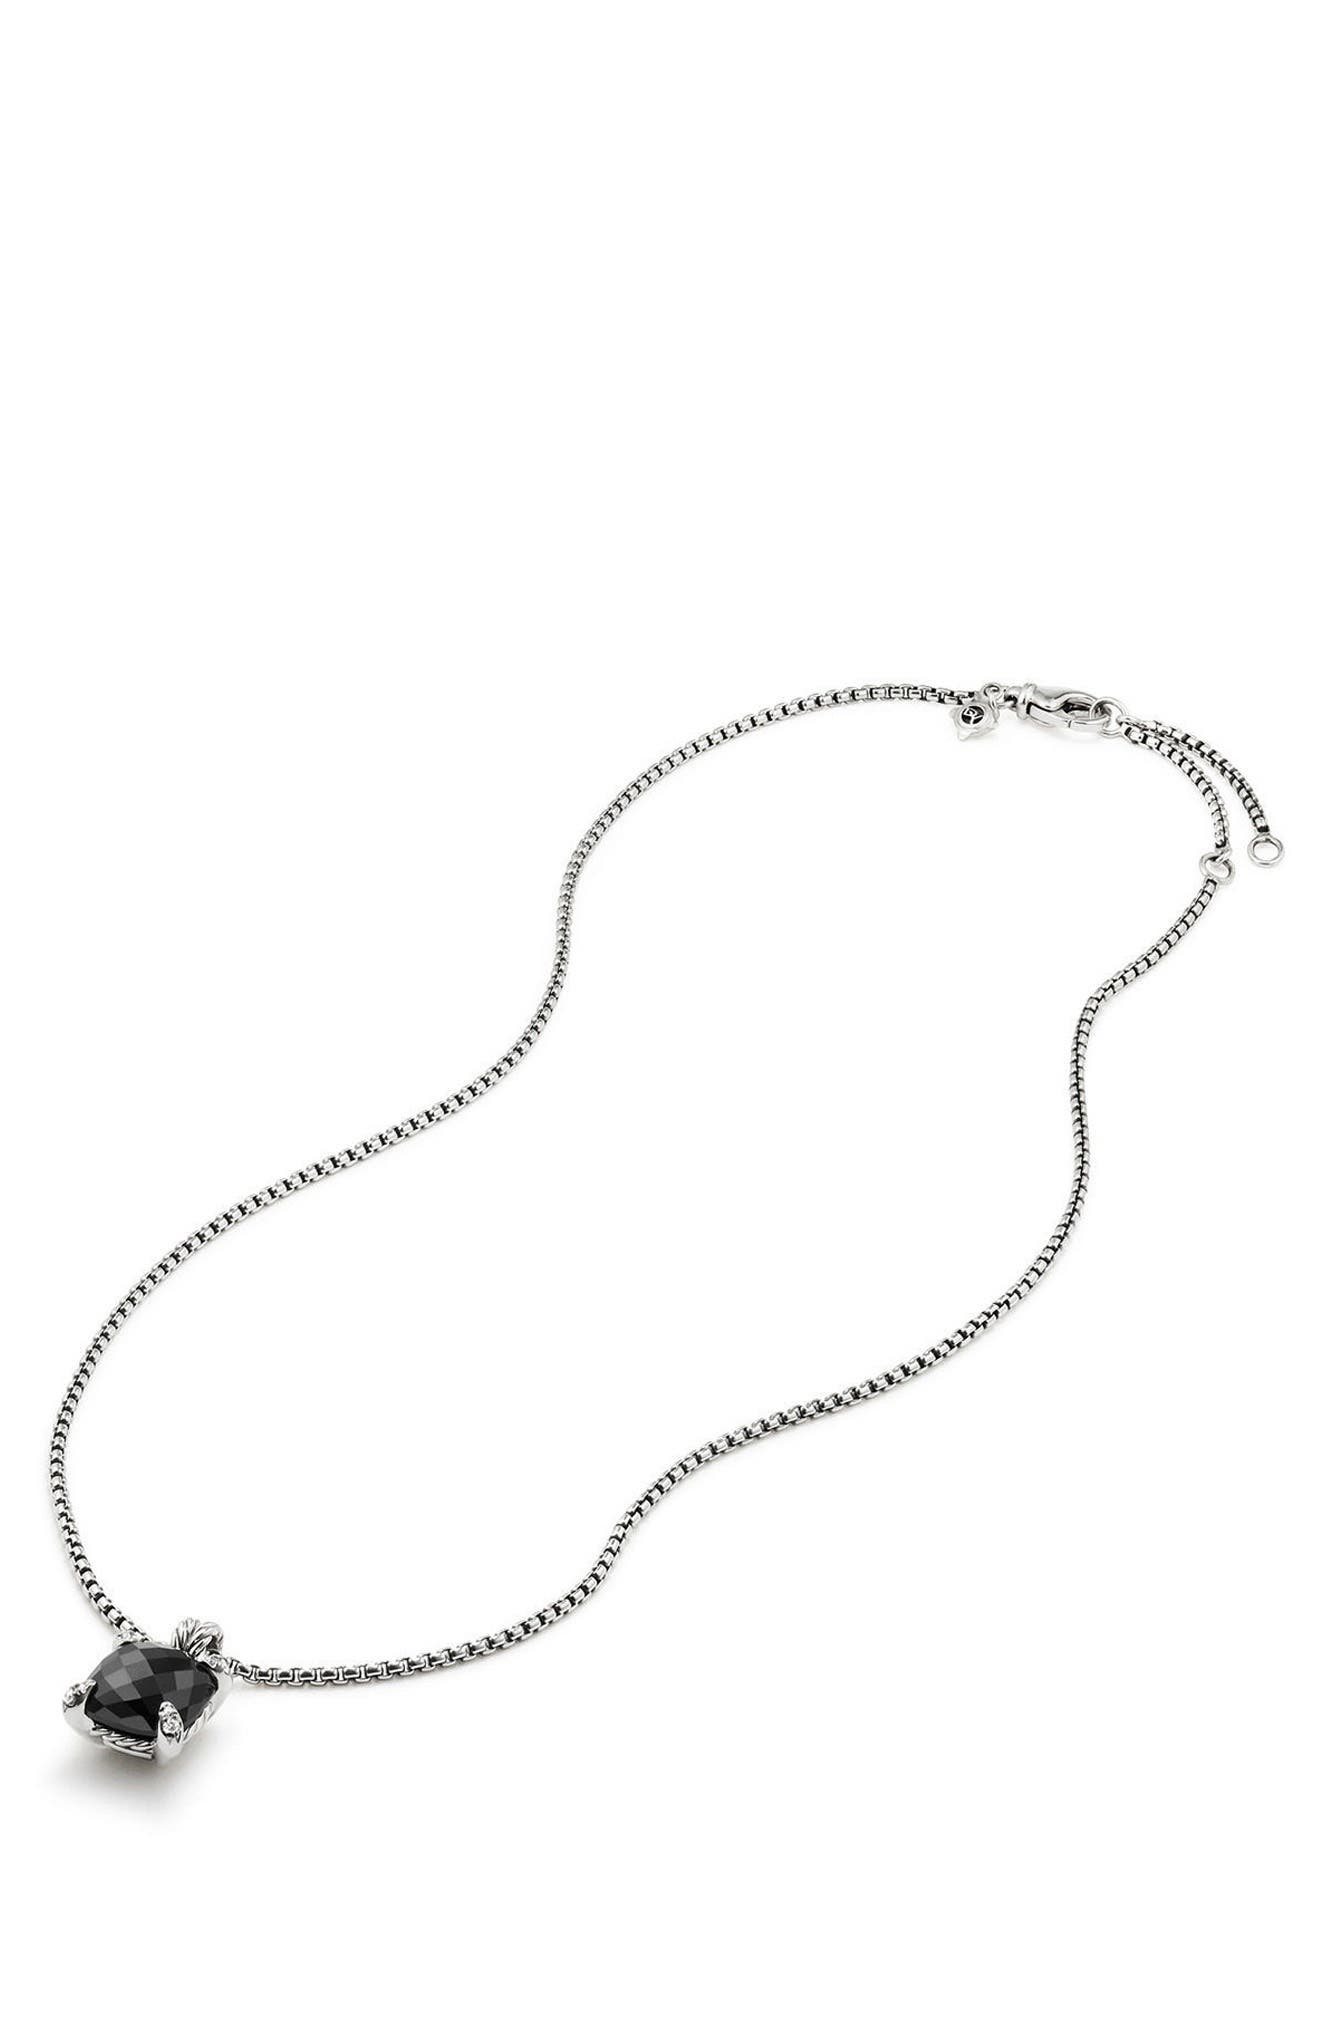 David Yurman Châtelaine Pendant Necklace with Black Onyx and Diamonds